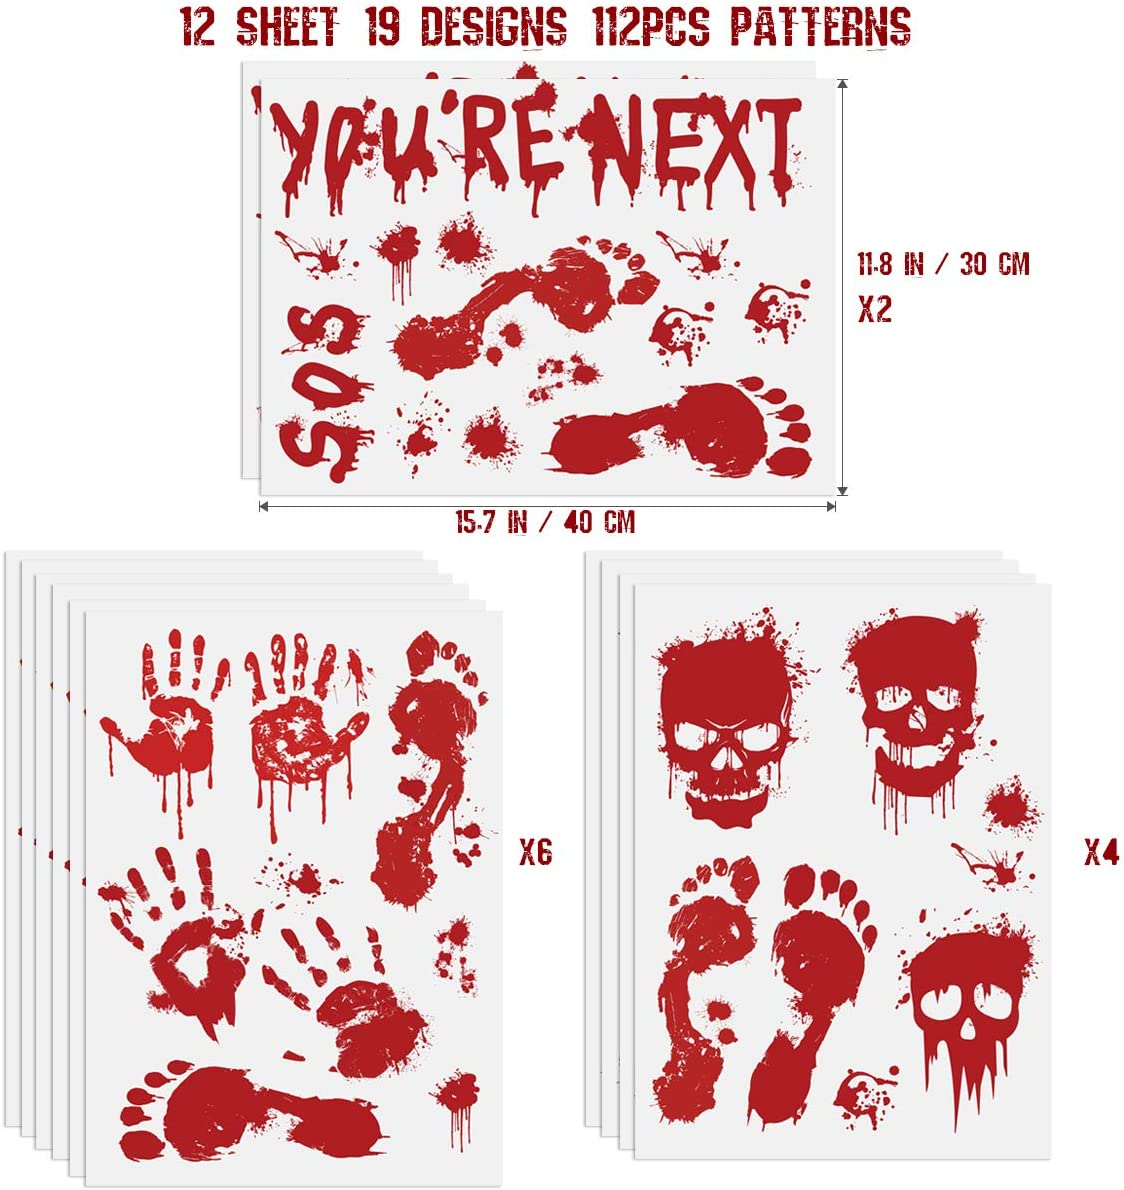 Halloween Window Clings, 12 Sheets Bloody Handprint Footprint Skull Blood Decor Floor Clings for Halloween Decorations 112 PCS